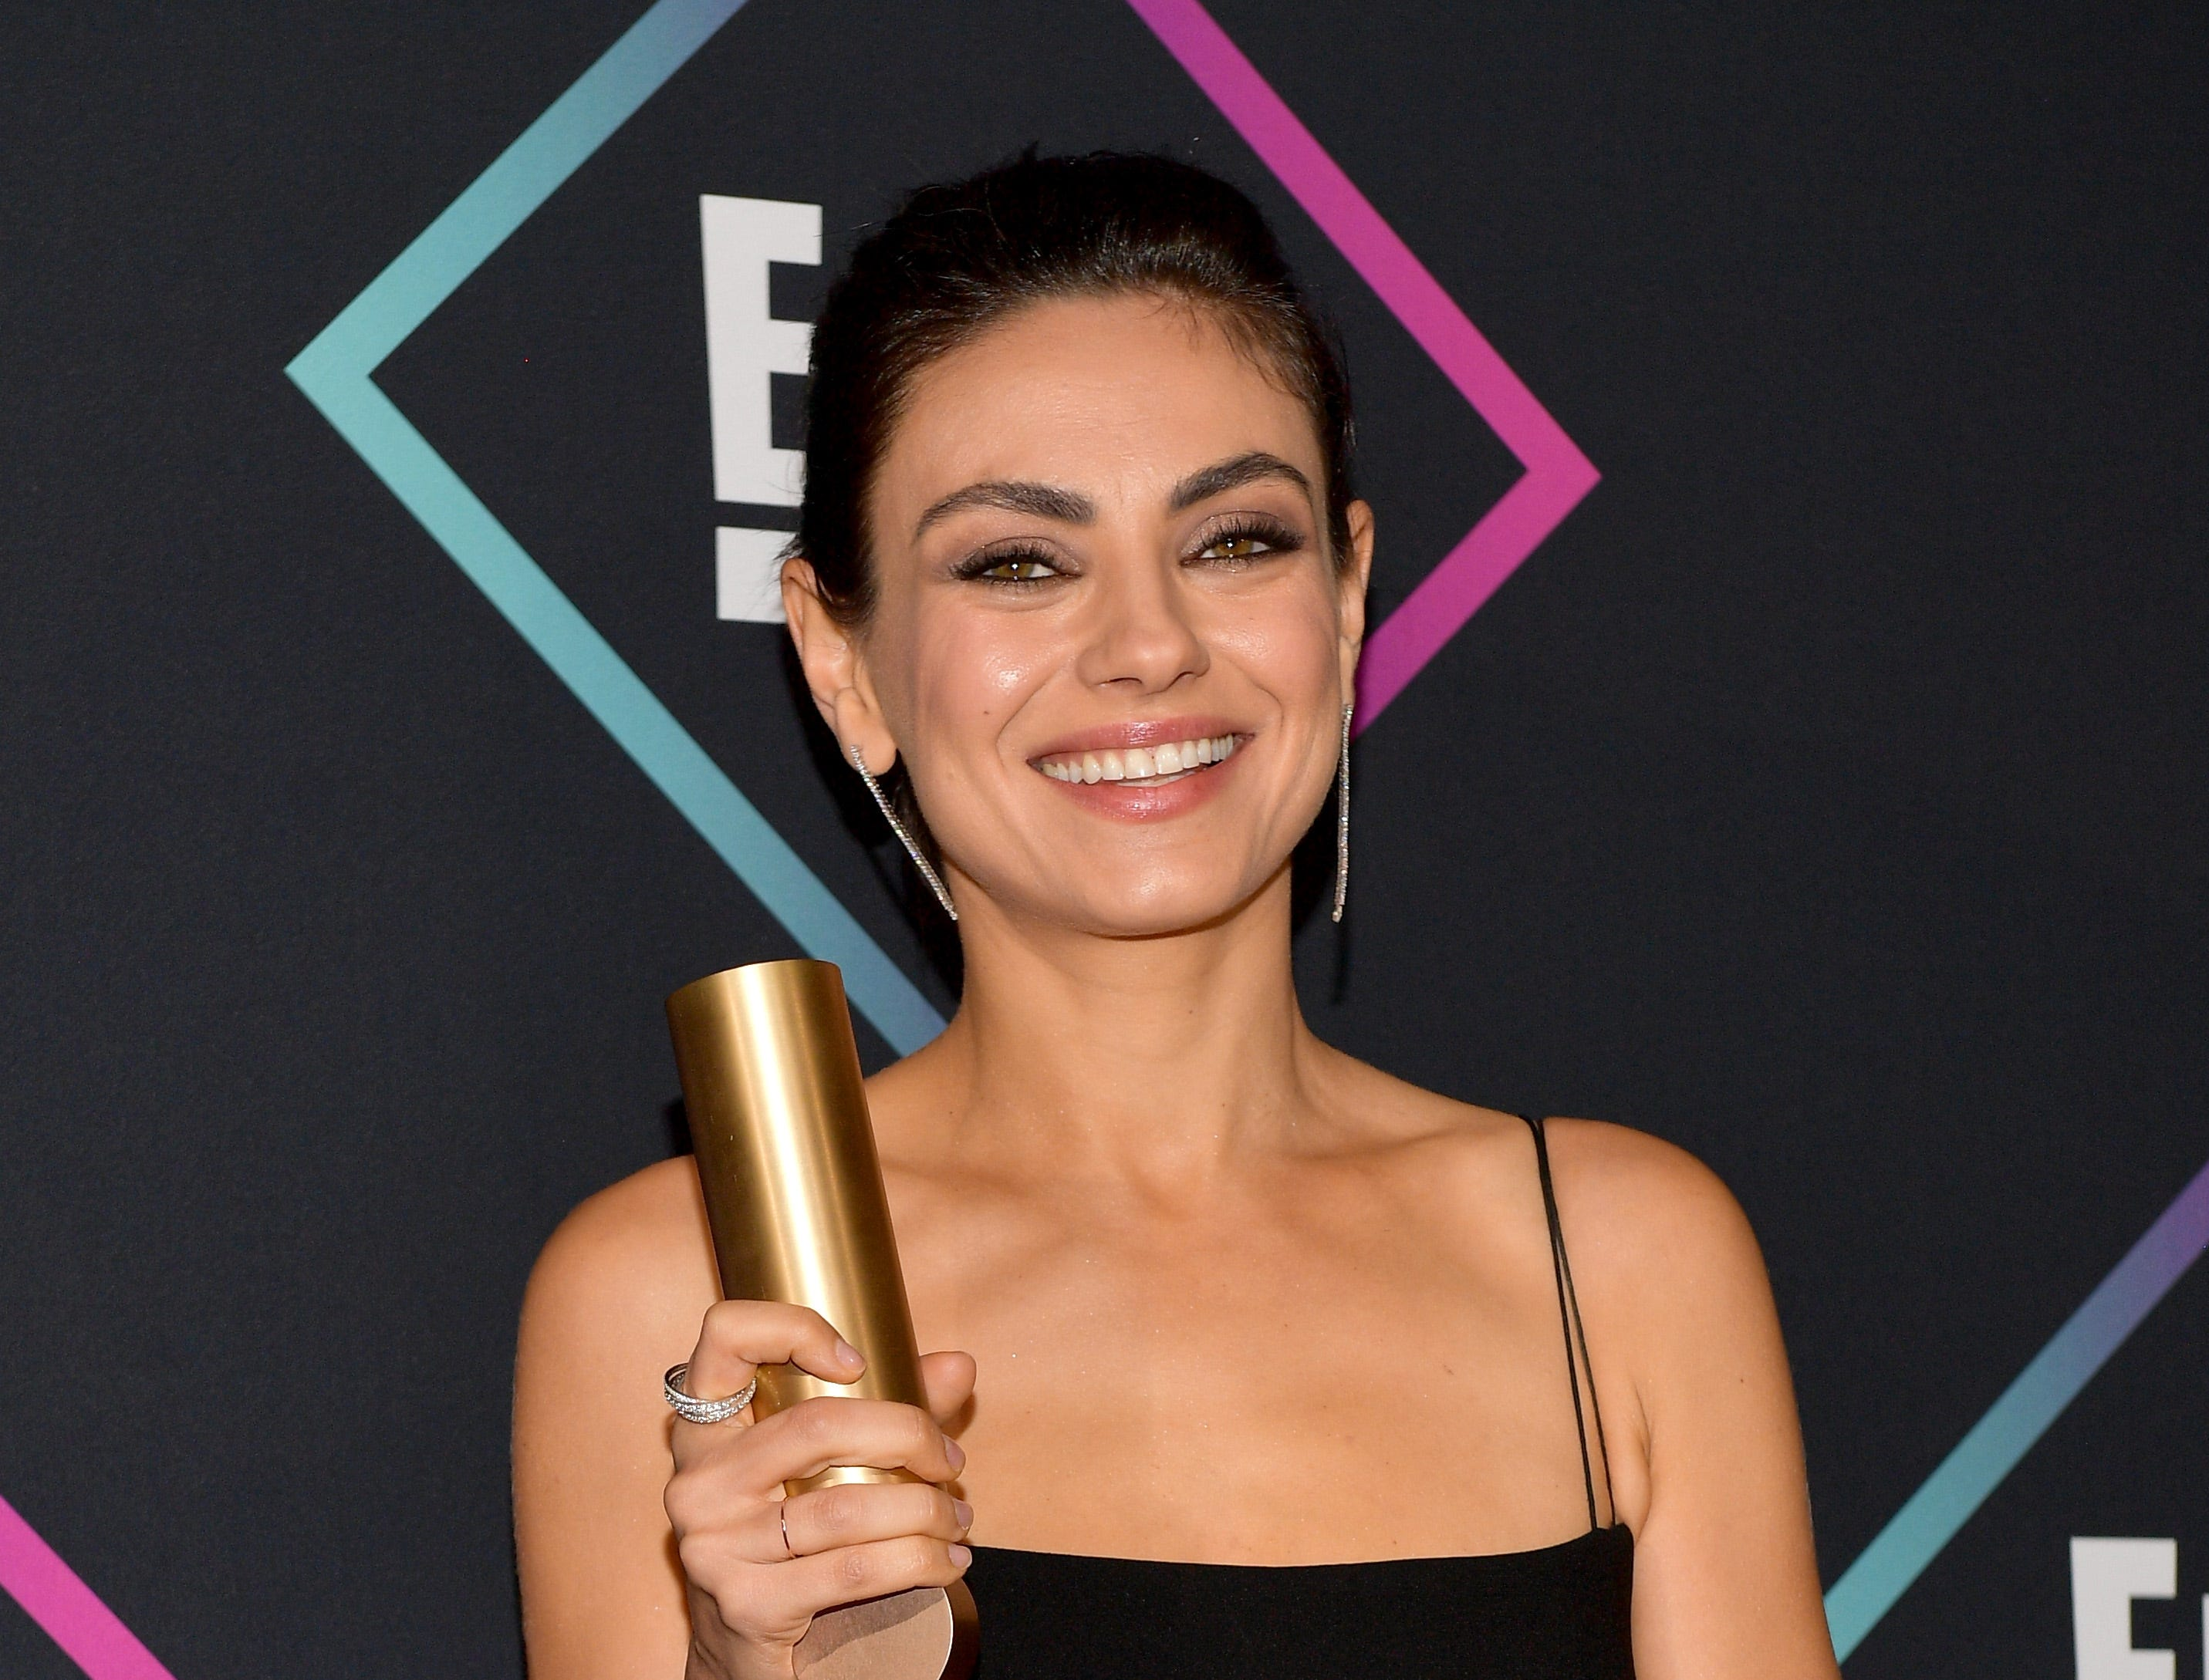 SANTA MONICA, CA - NOVEMBER 11:  Mila Kunis, Comedy Movie Star of 2018, poses in the press room during the People's Choice Awards 2018 at Barker Hangar on November 11, 2018 in Santa Monica, California.  (Photo by Matt Winkelmeyer/Getty Images) ORG XMIT: 775237966 ORIG FILE ID: 1060384498